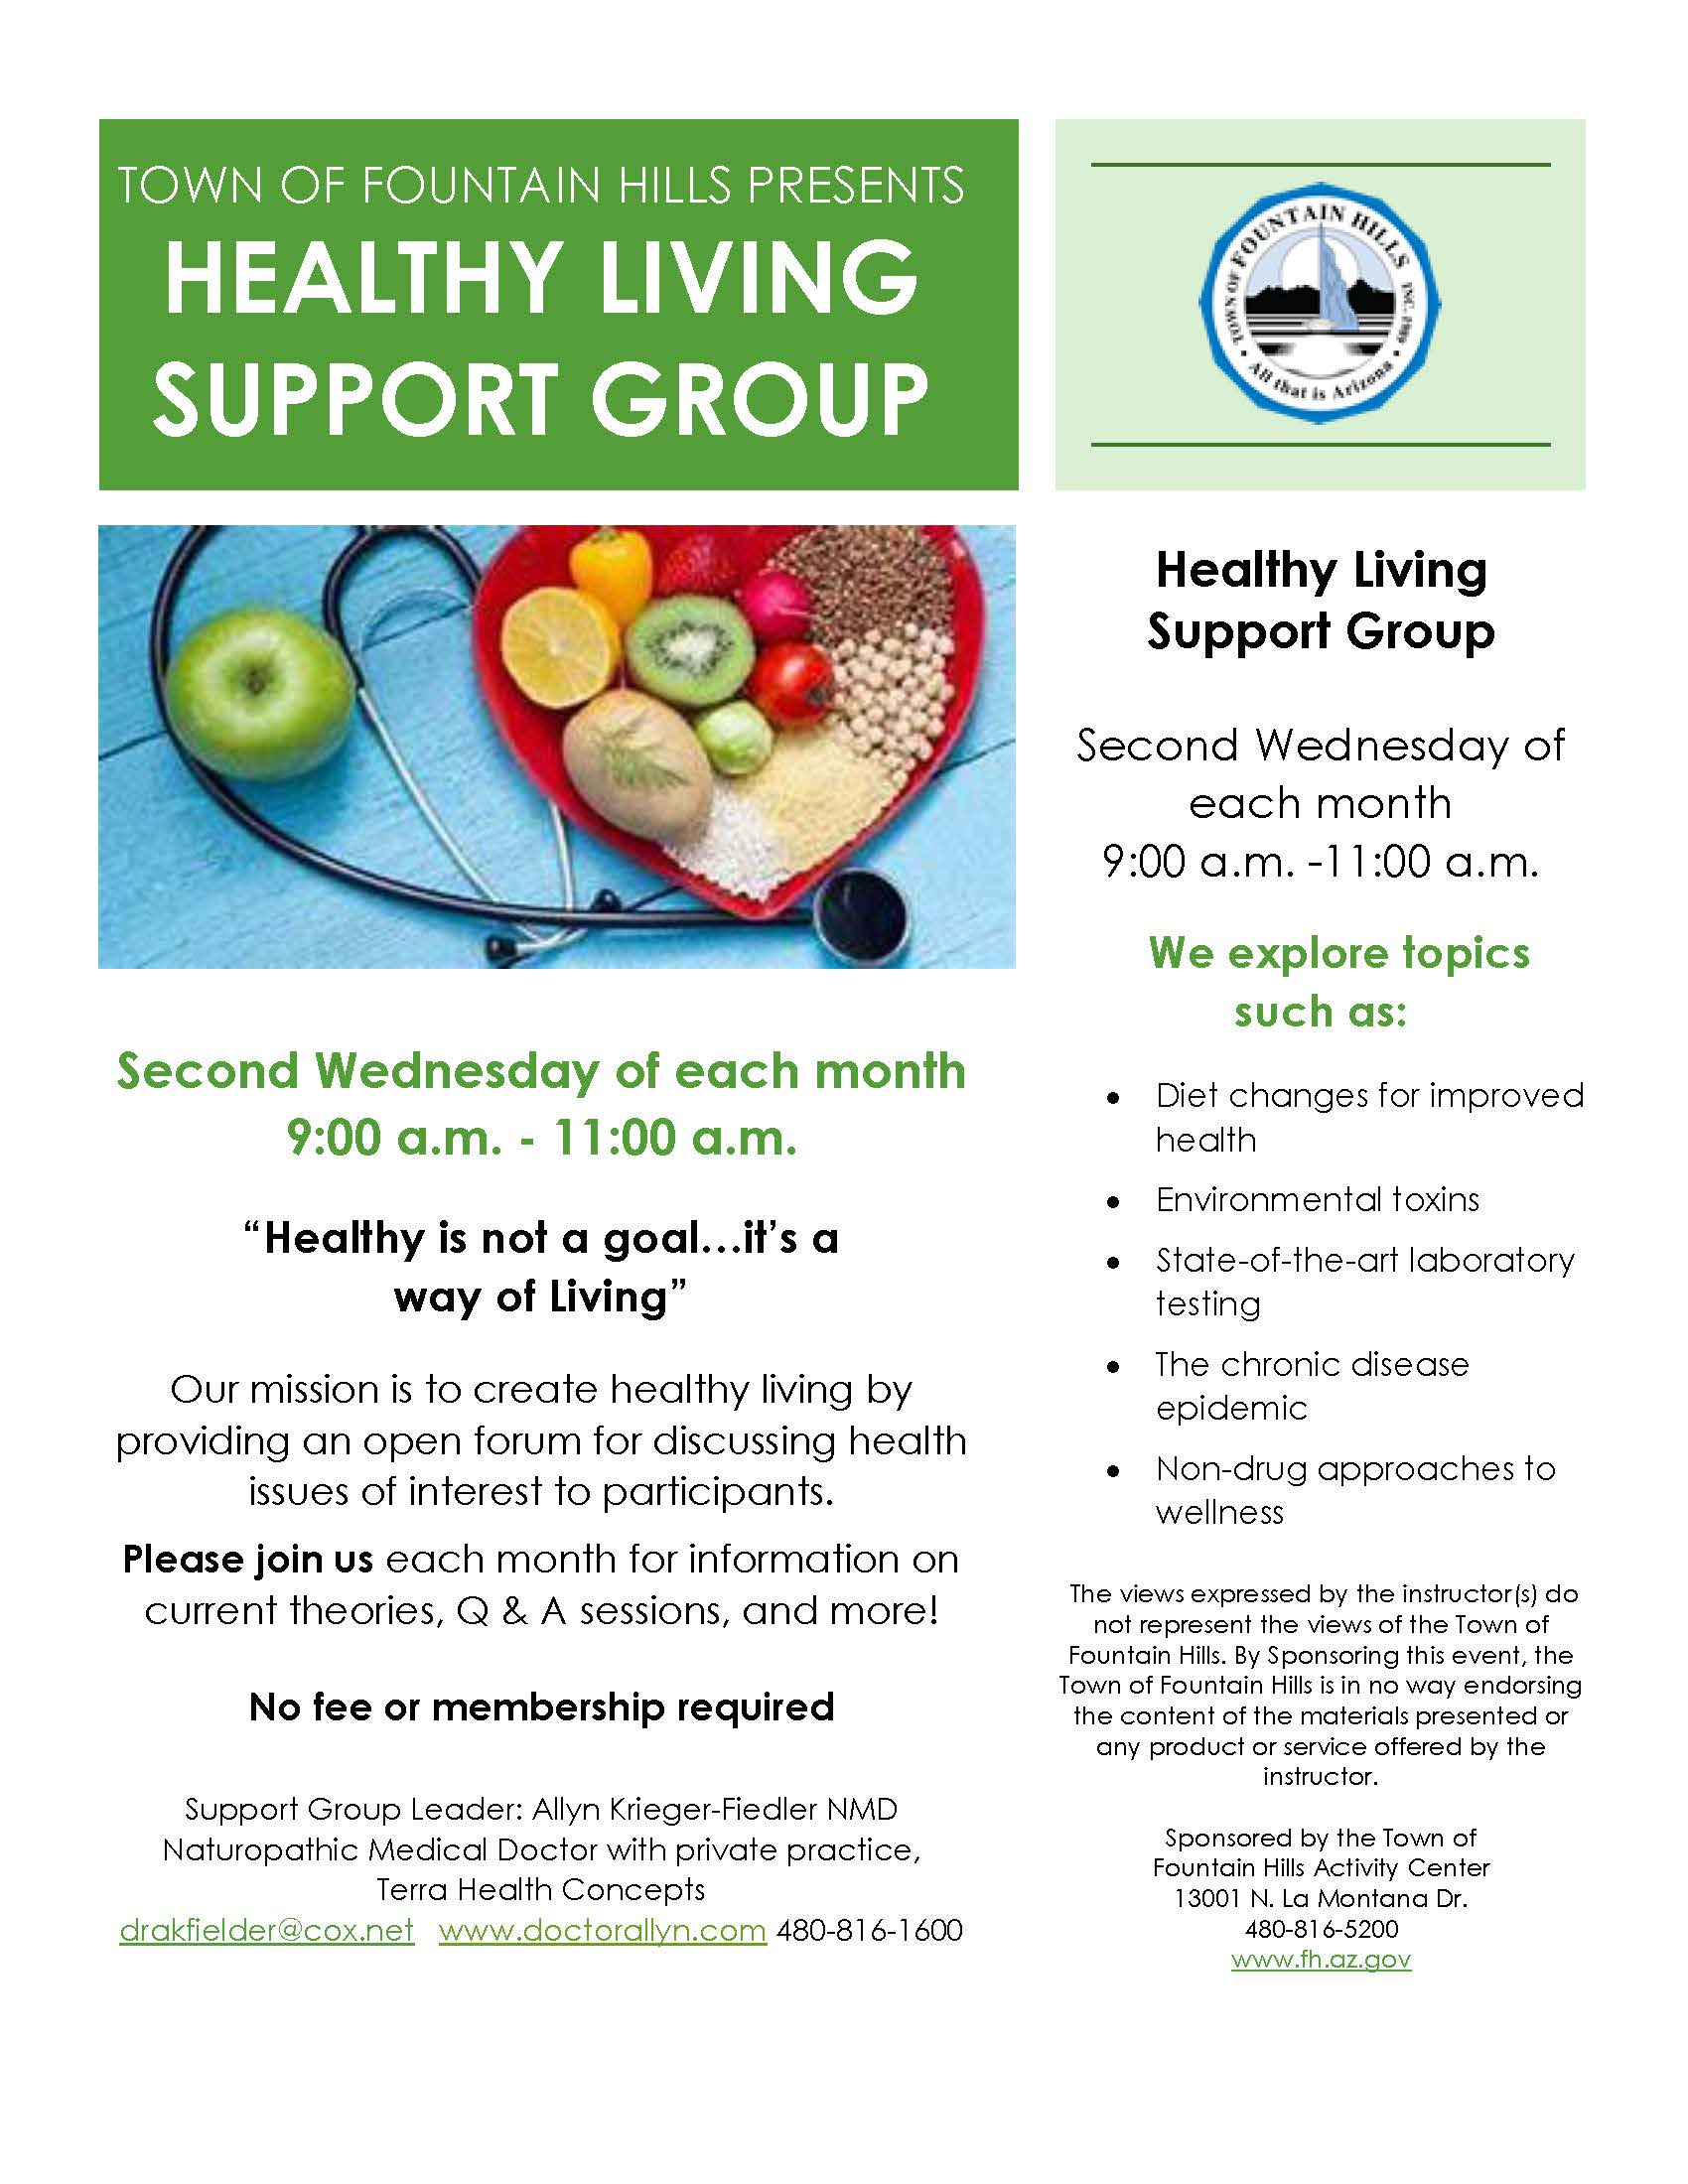 Healthy Living Support Group Flyer